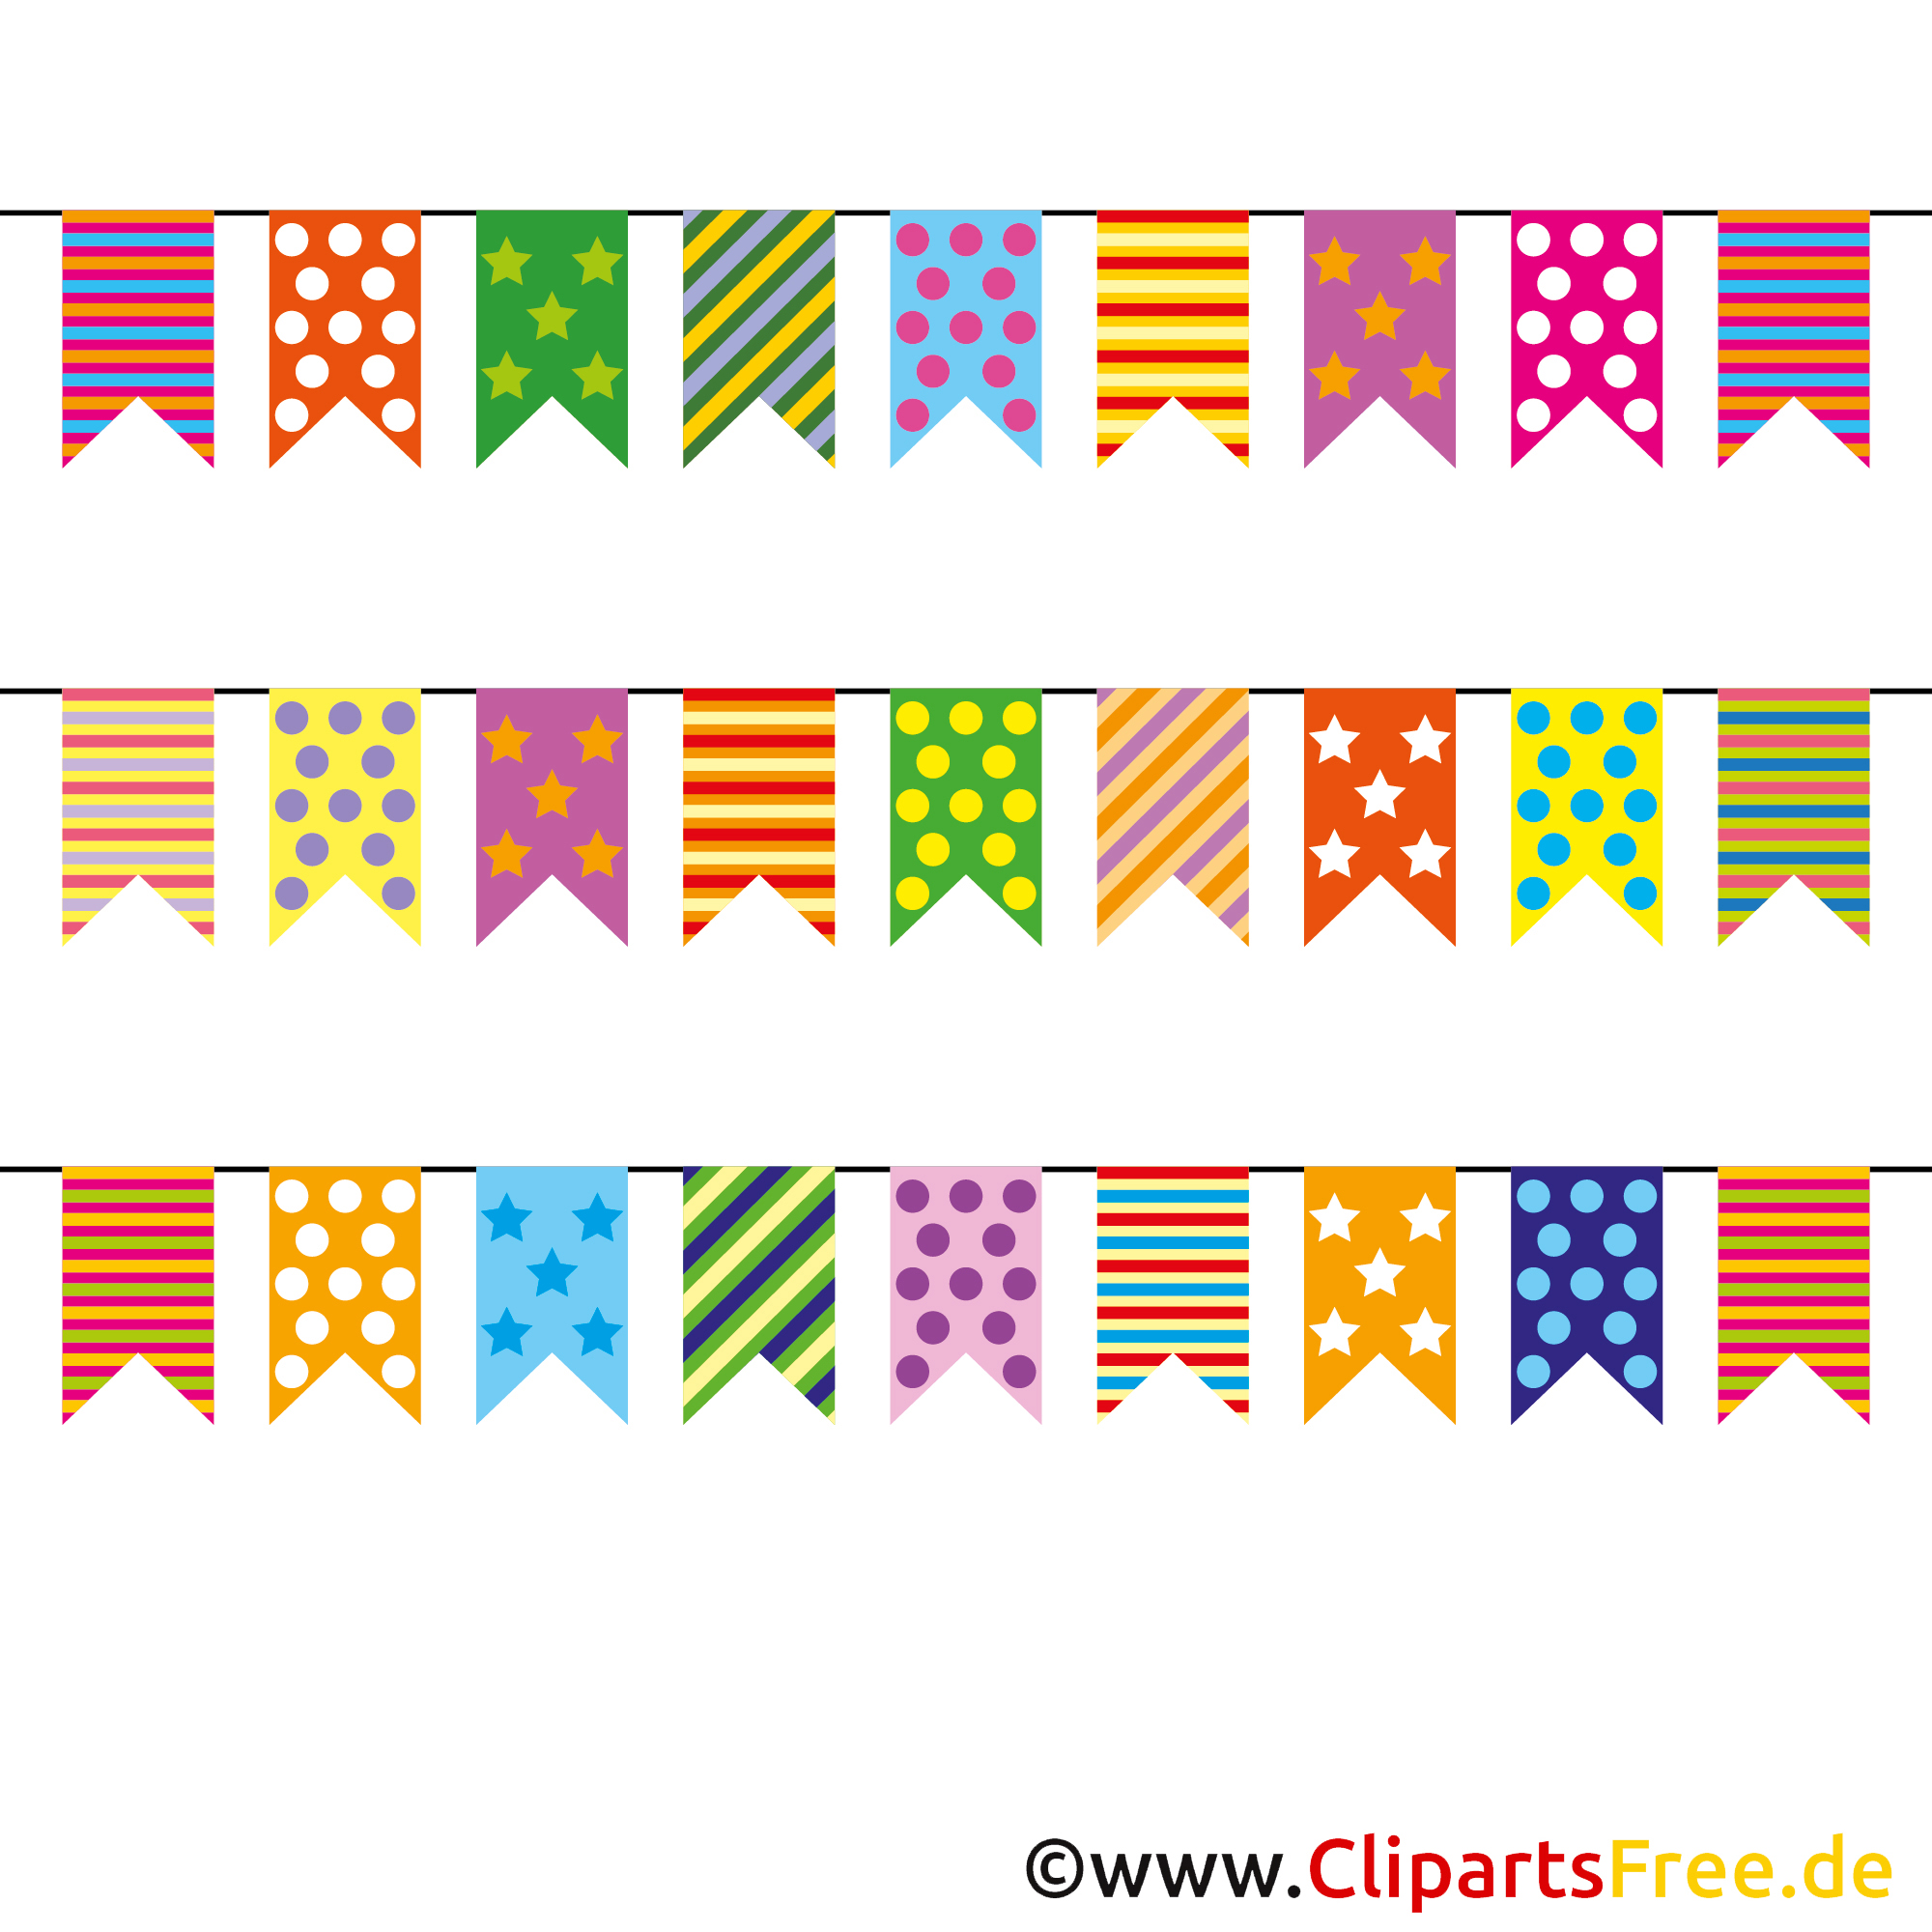 clipart geburtstag - photo #14